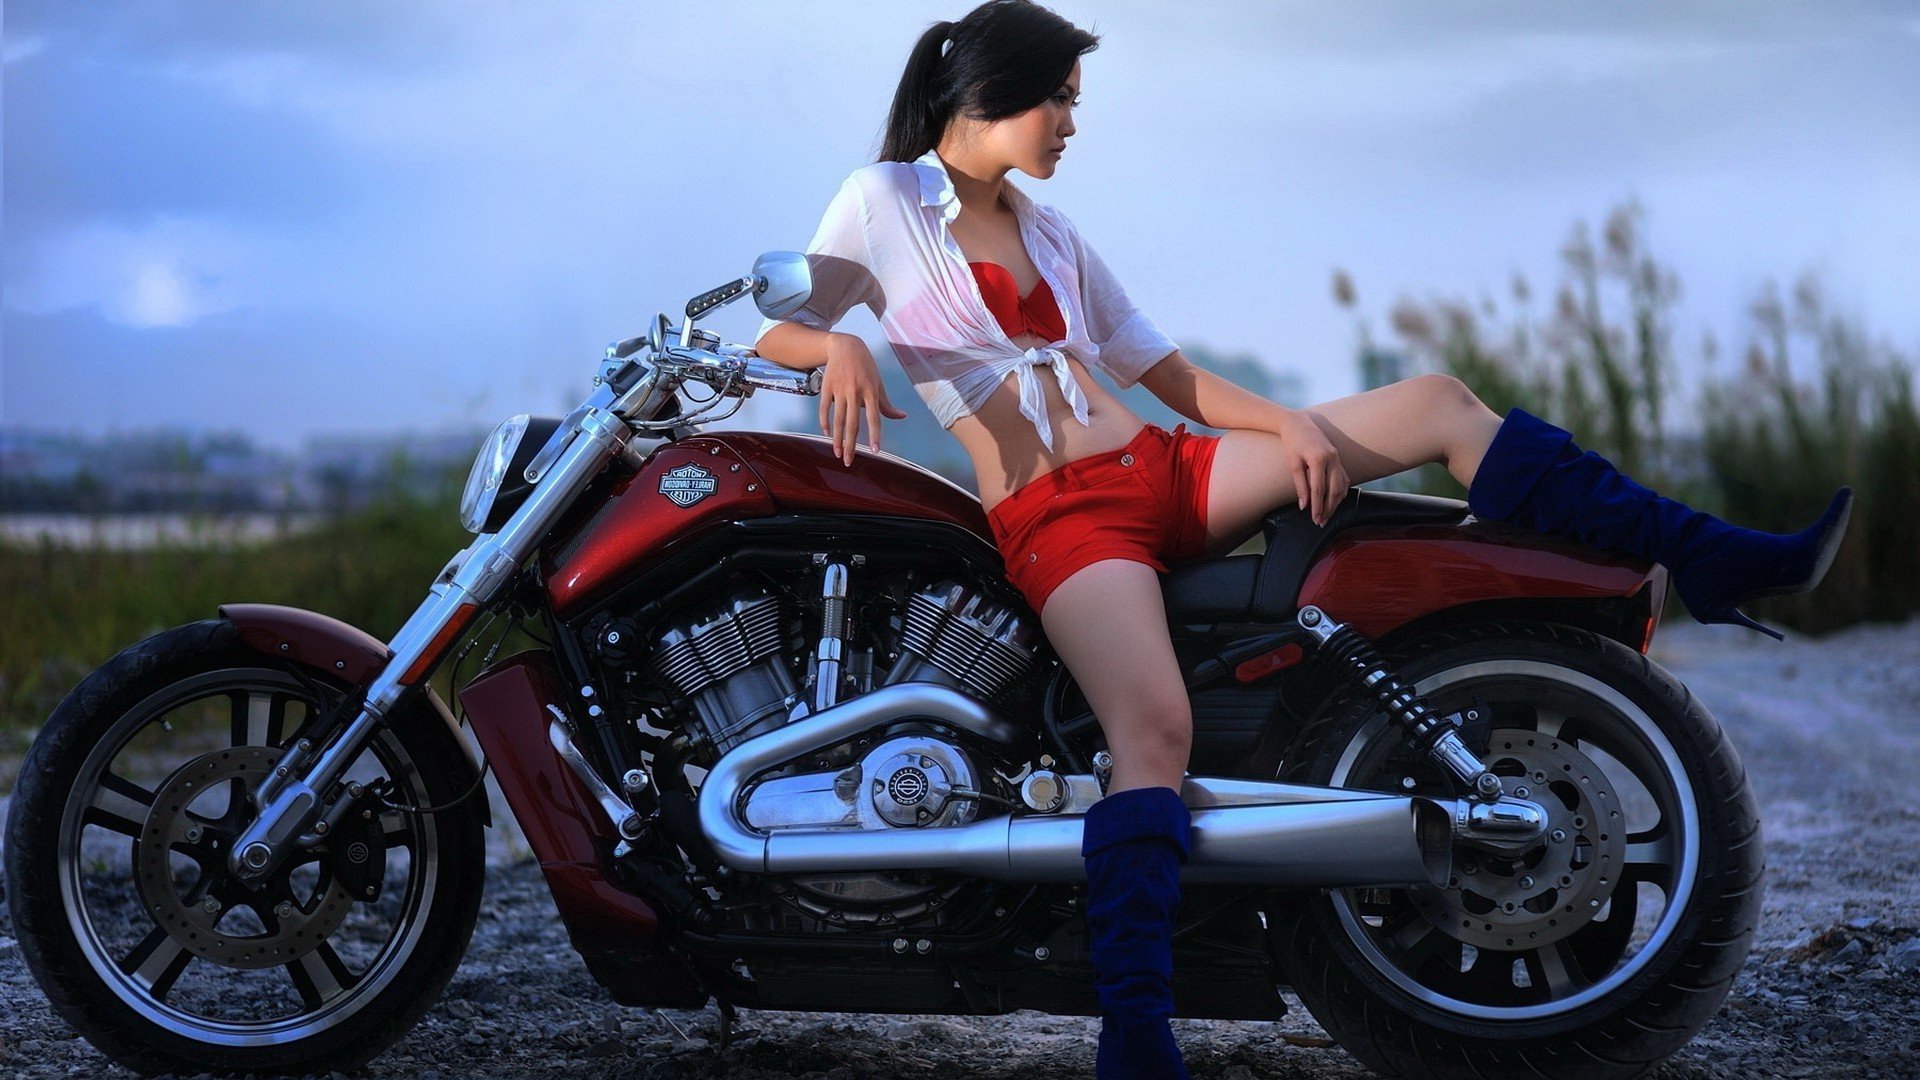 girls and motorcycles bike vehicle wheel transportation system